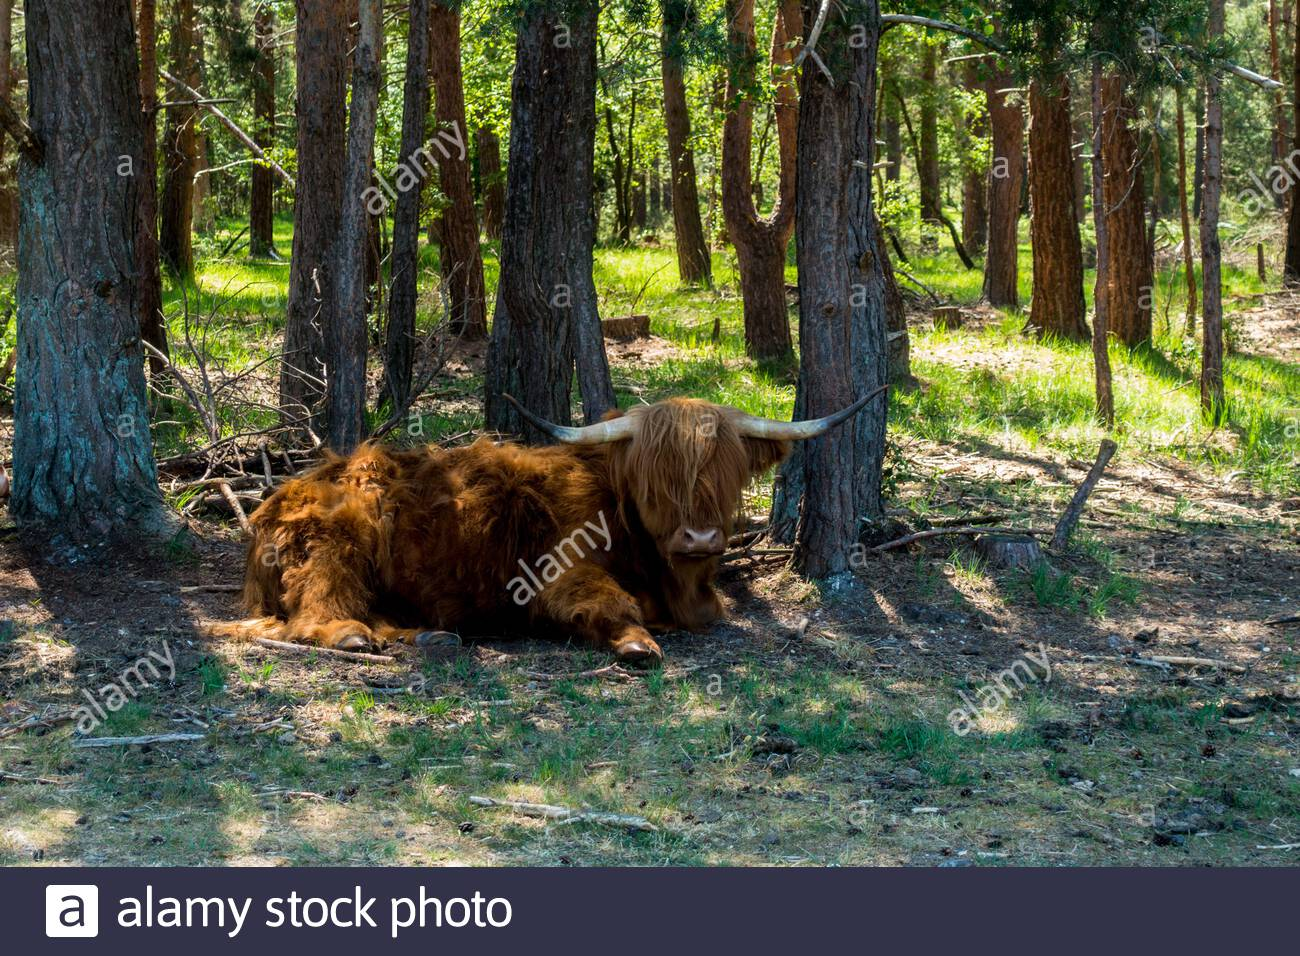 1st June 2020, as the heatwave continues in Southern England, a highland steer, still retaining its winter coat, cools down in the shade of pine trees Stock Photo